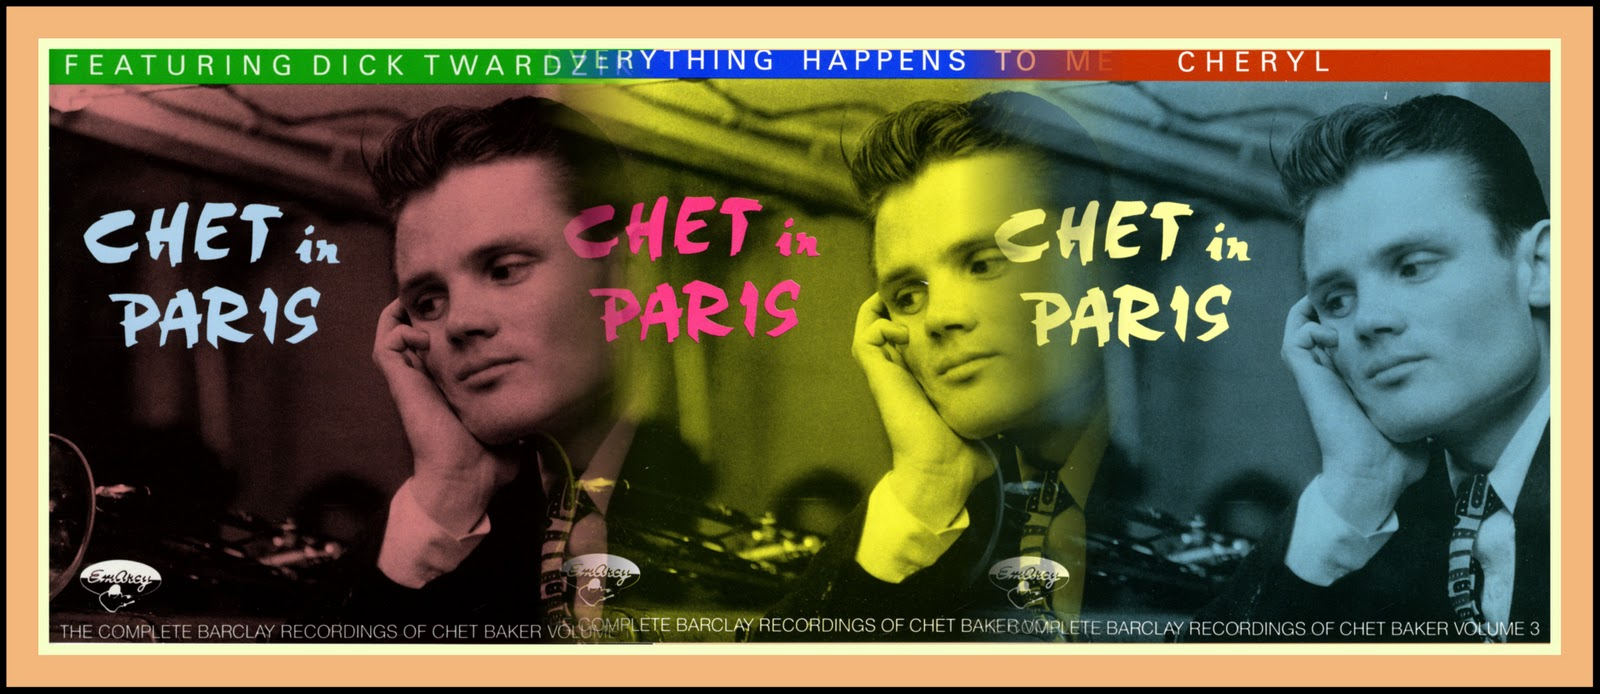 Chet+in+Paris+-+stitched.jpg